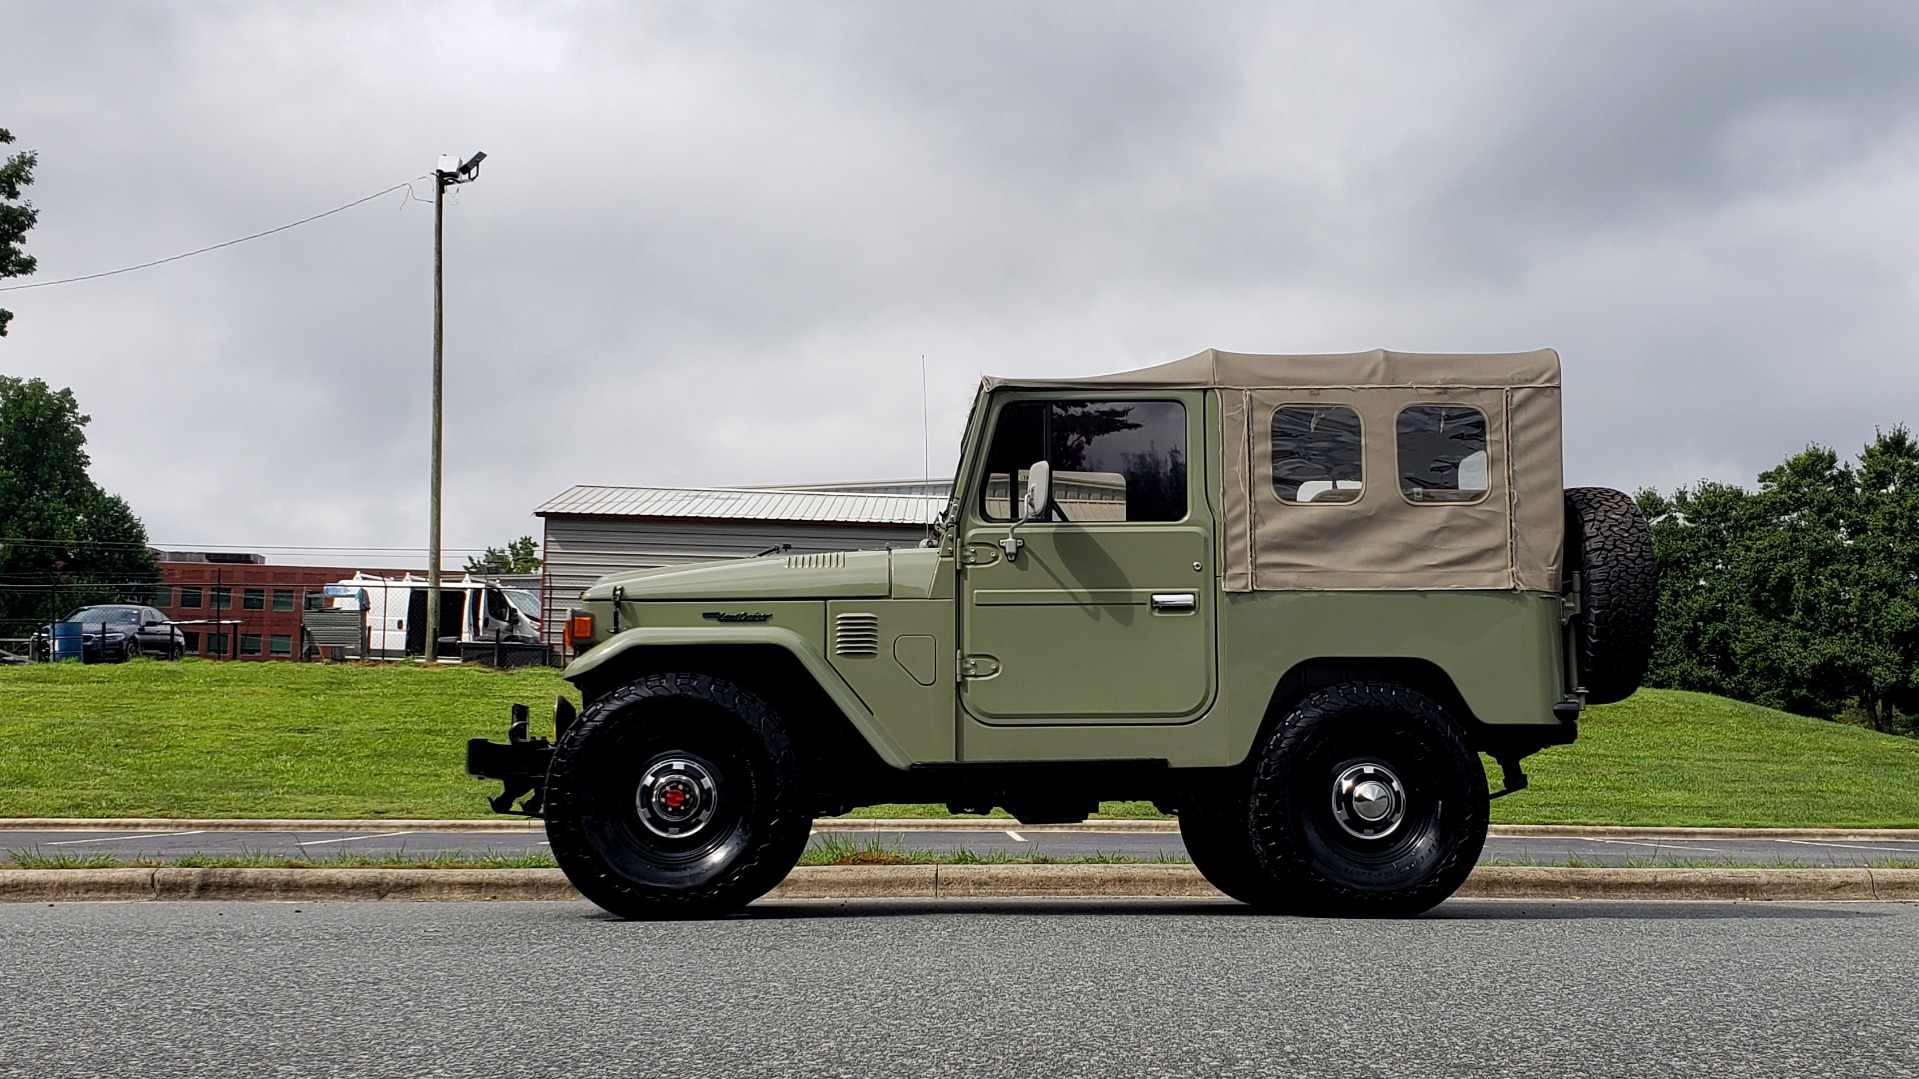 Used 1981 Toyota FJ40 LAND CRUISER FULL RESTORATION - 6500KM SINCE COMPLETE for sale $40,995 at Formula Imports in Charlotte NC 28227 3